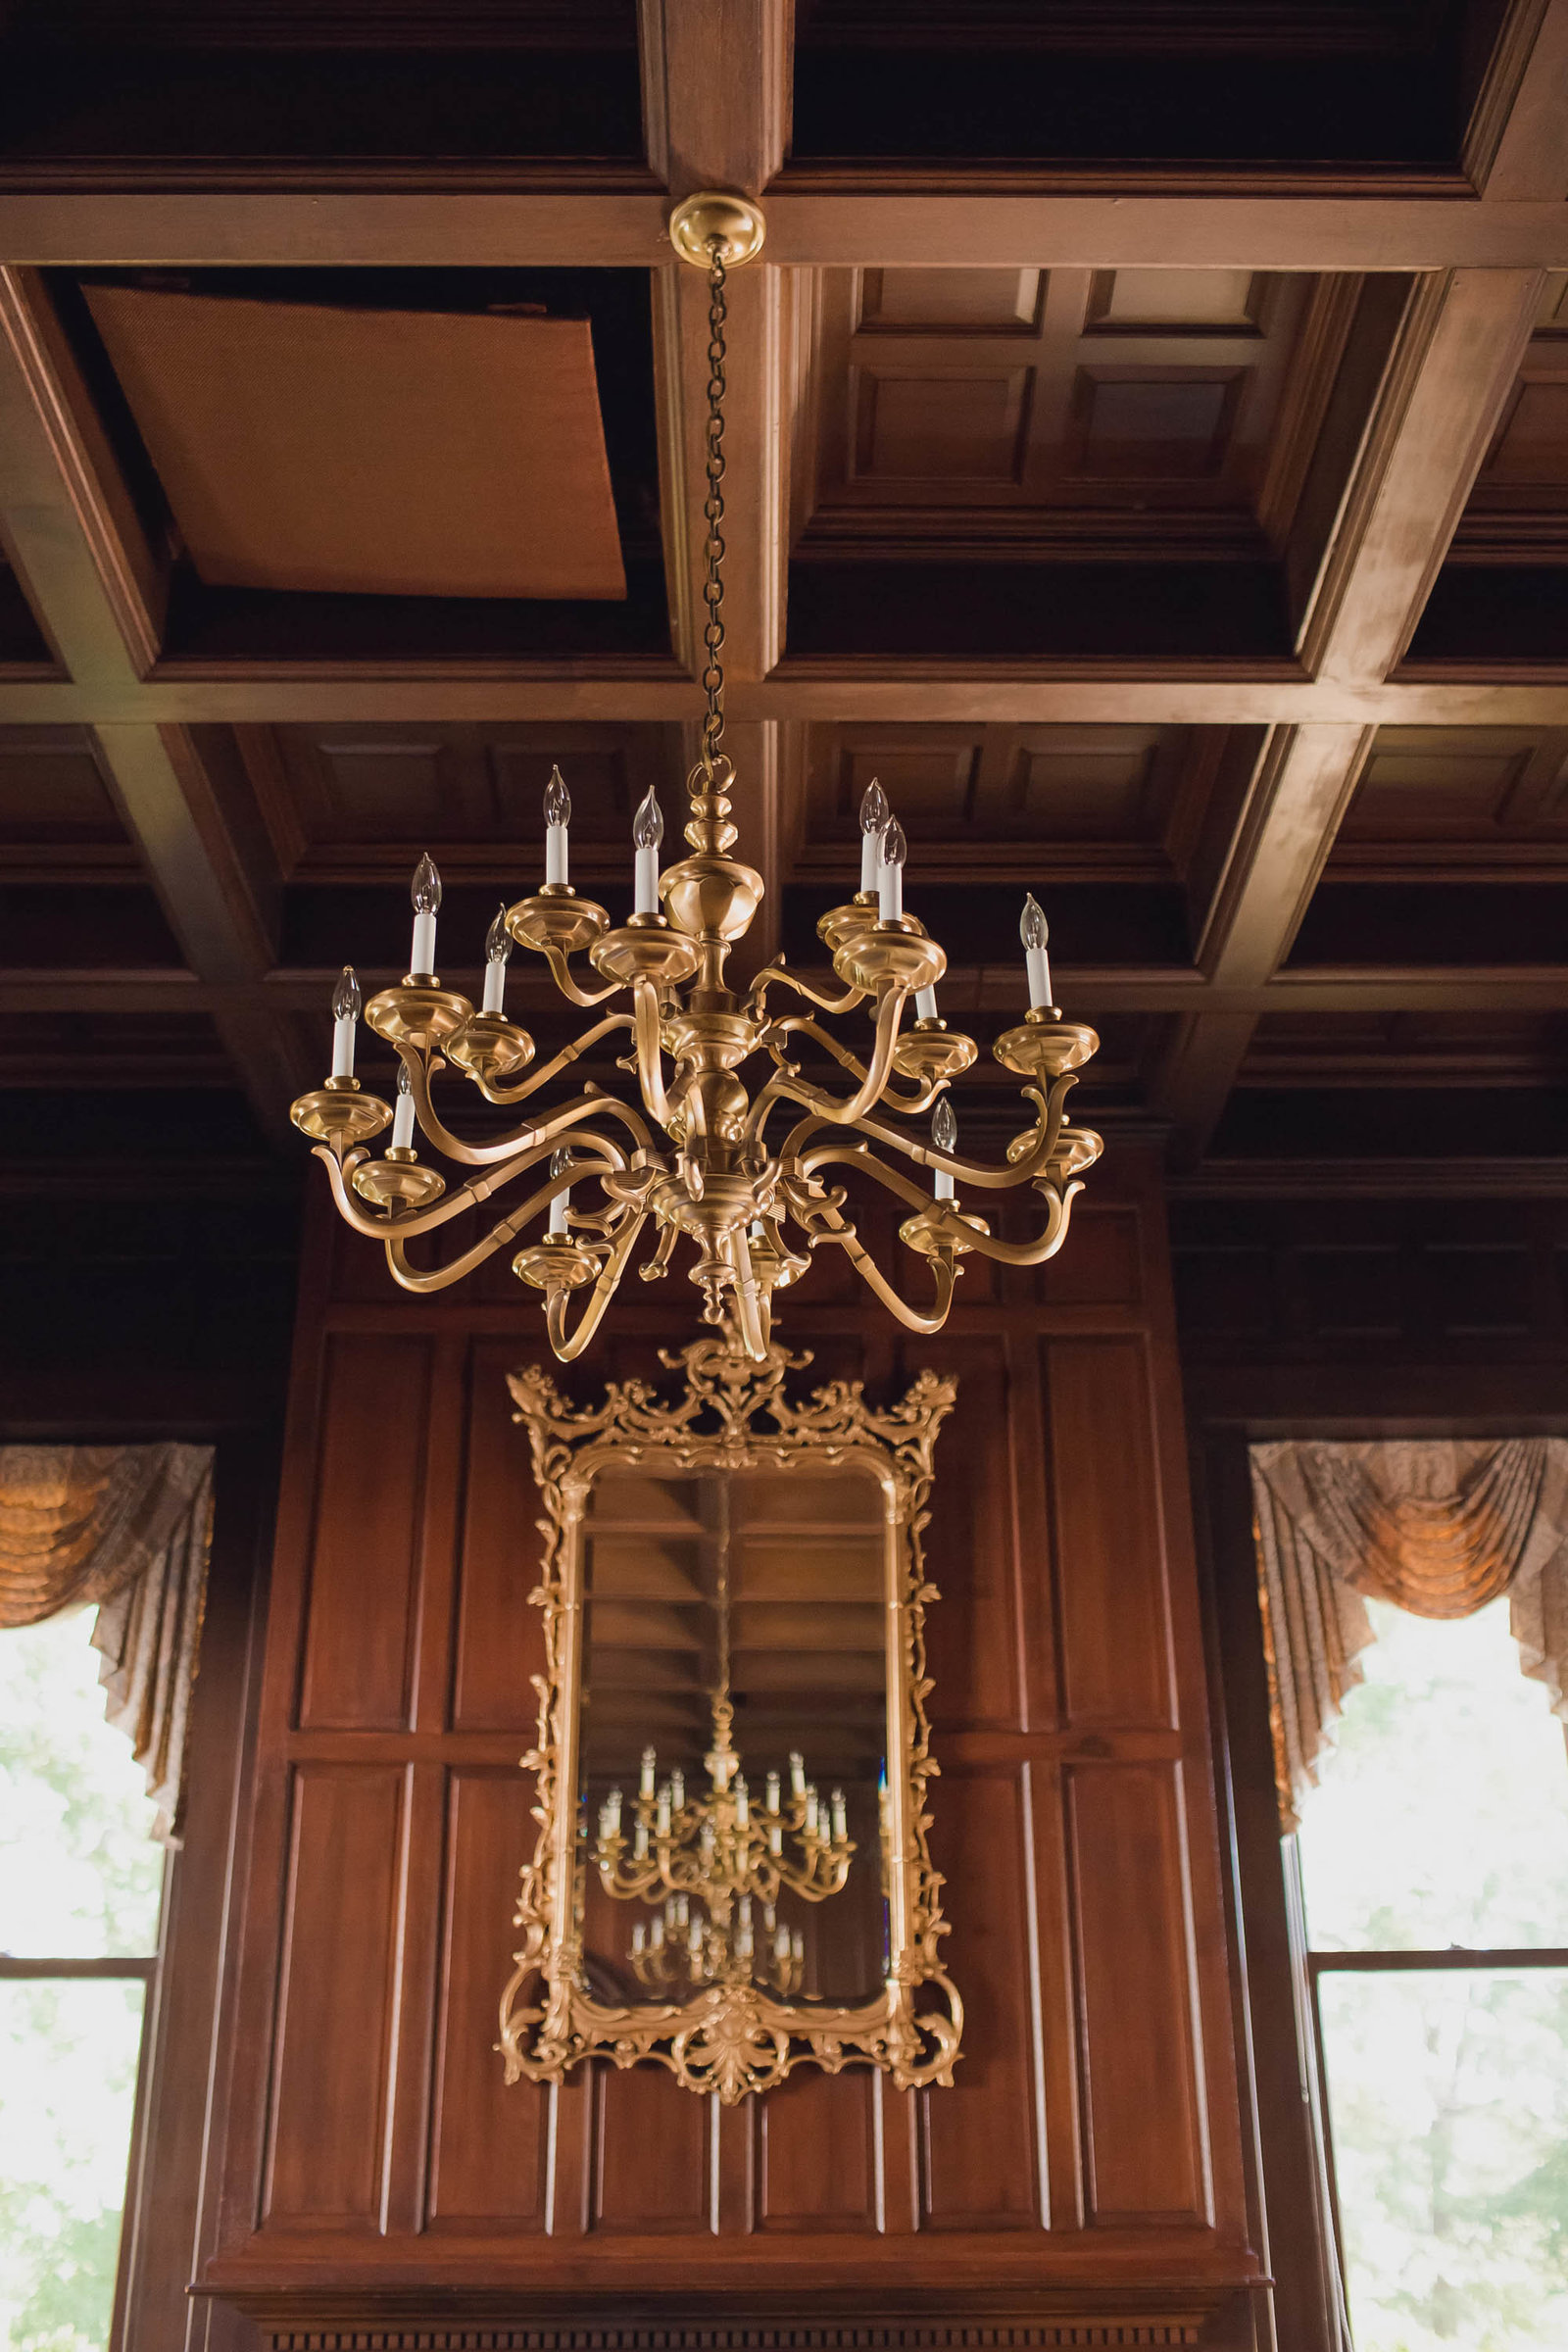 interior-mansion-victorian-chandeliers-kate-timbers-photography-952